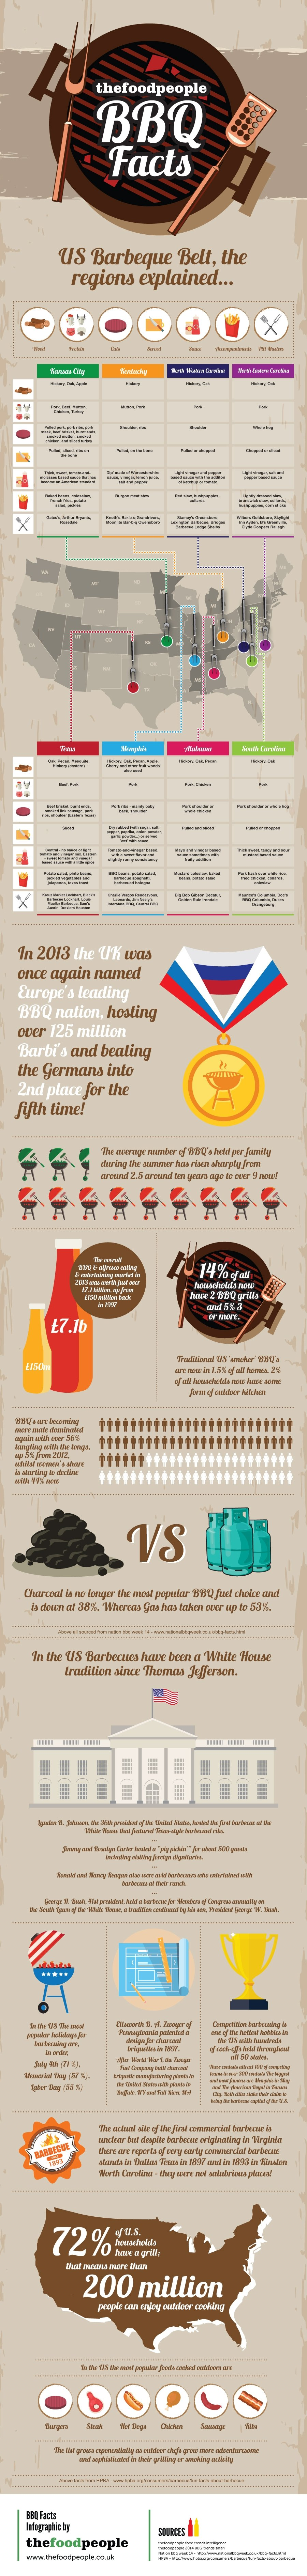 Southern BBQ Infographic